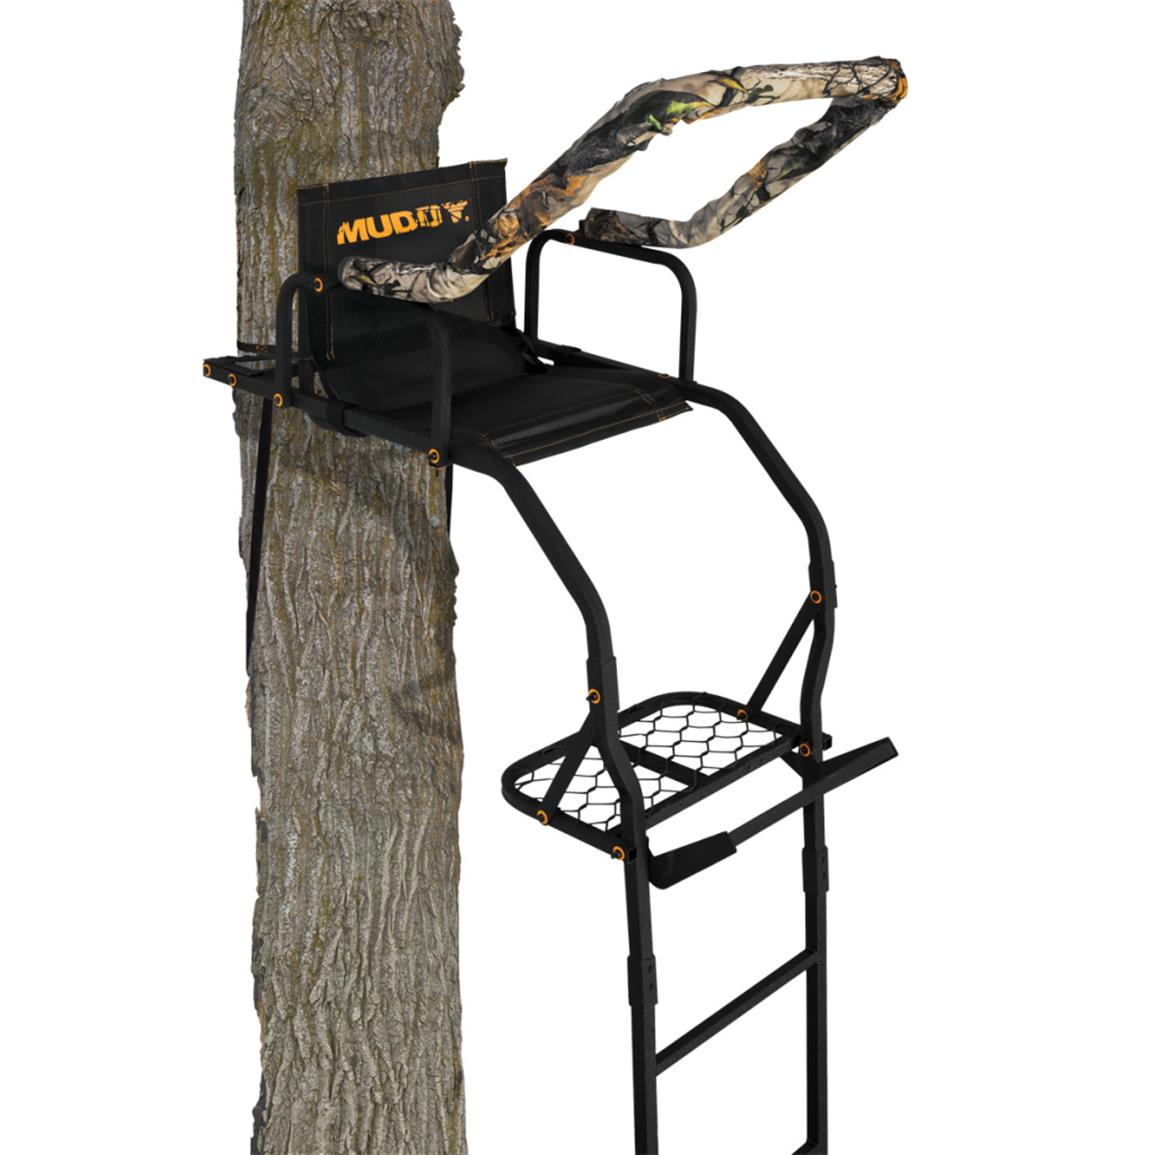 Muddy The Outlander Ladder Tree Stand, 17'